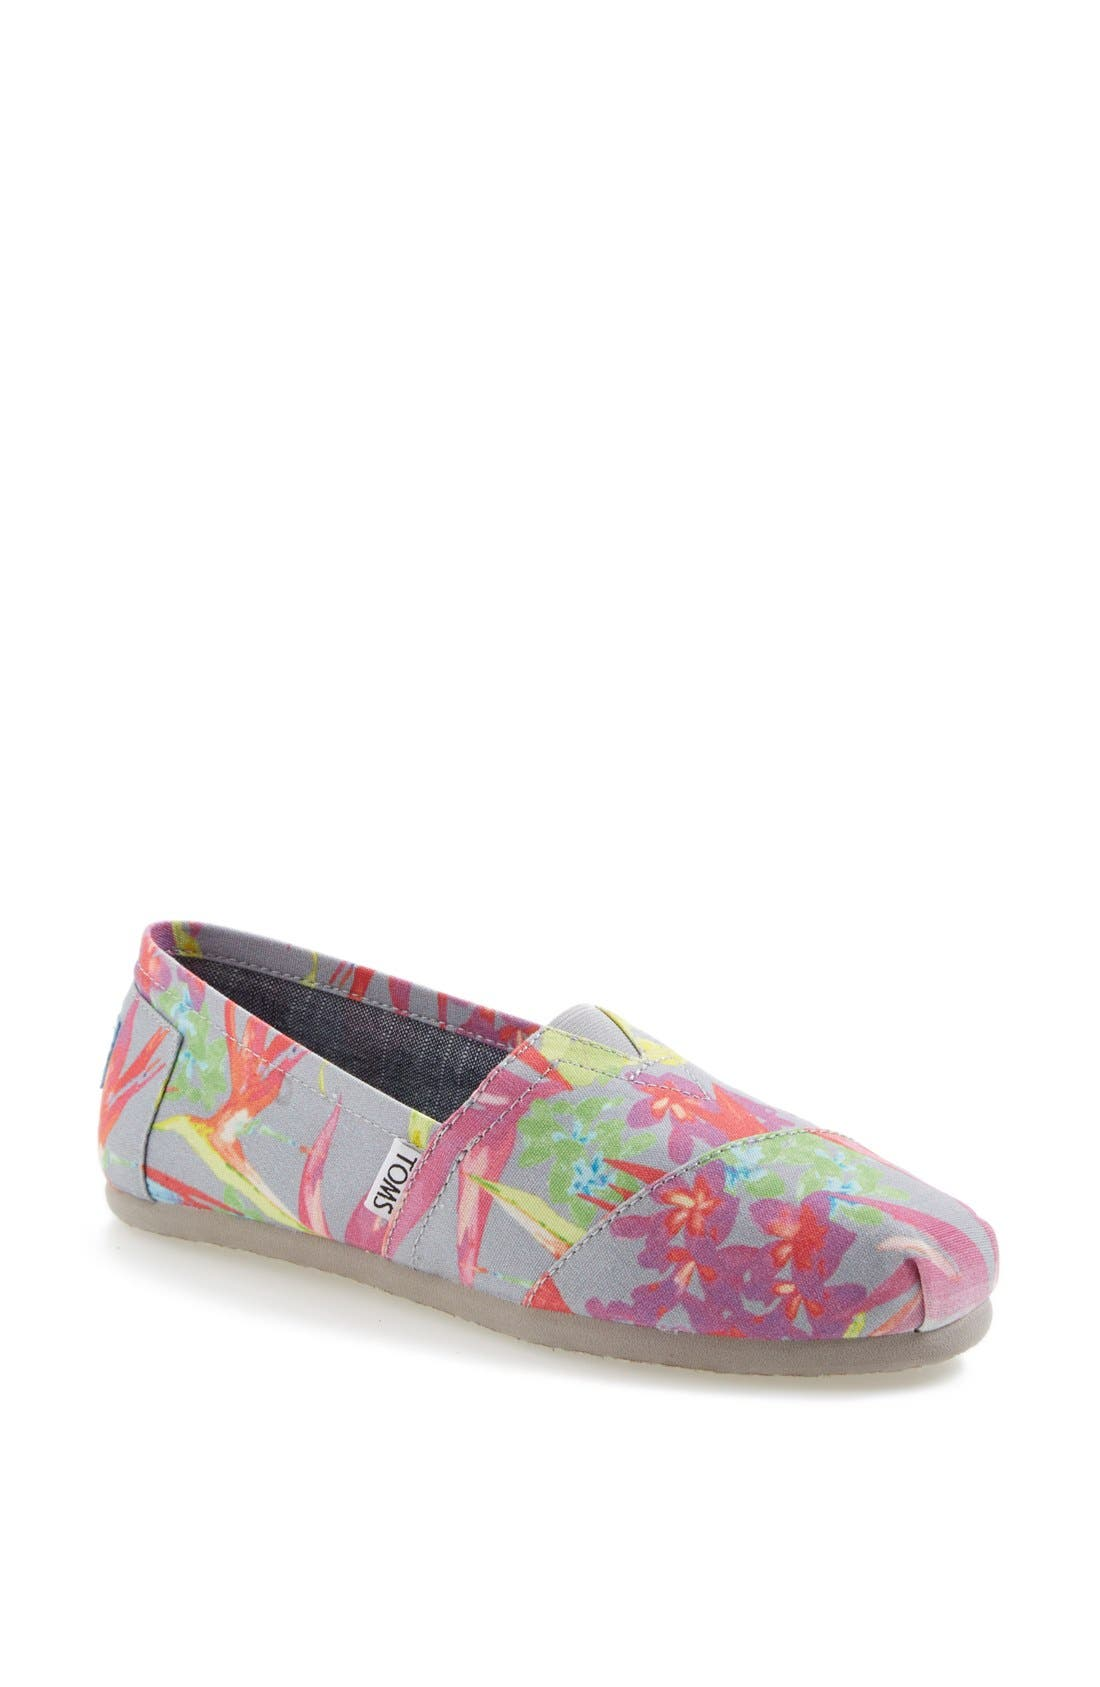 Alternate Image 1 Selected - TOMS 'Classic - Birds of Paradise' Slip-On (Women)